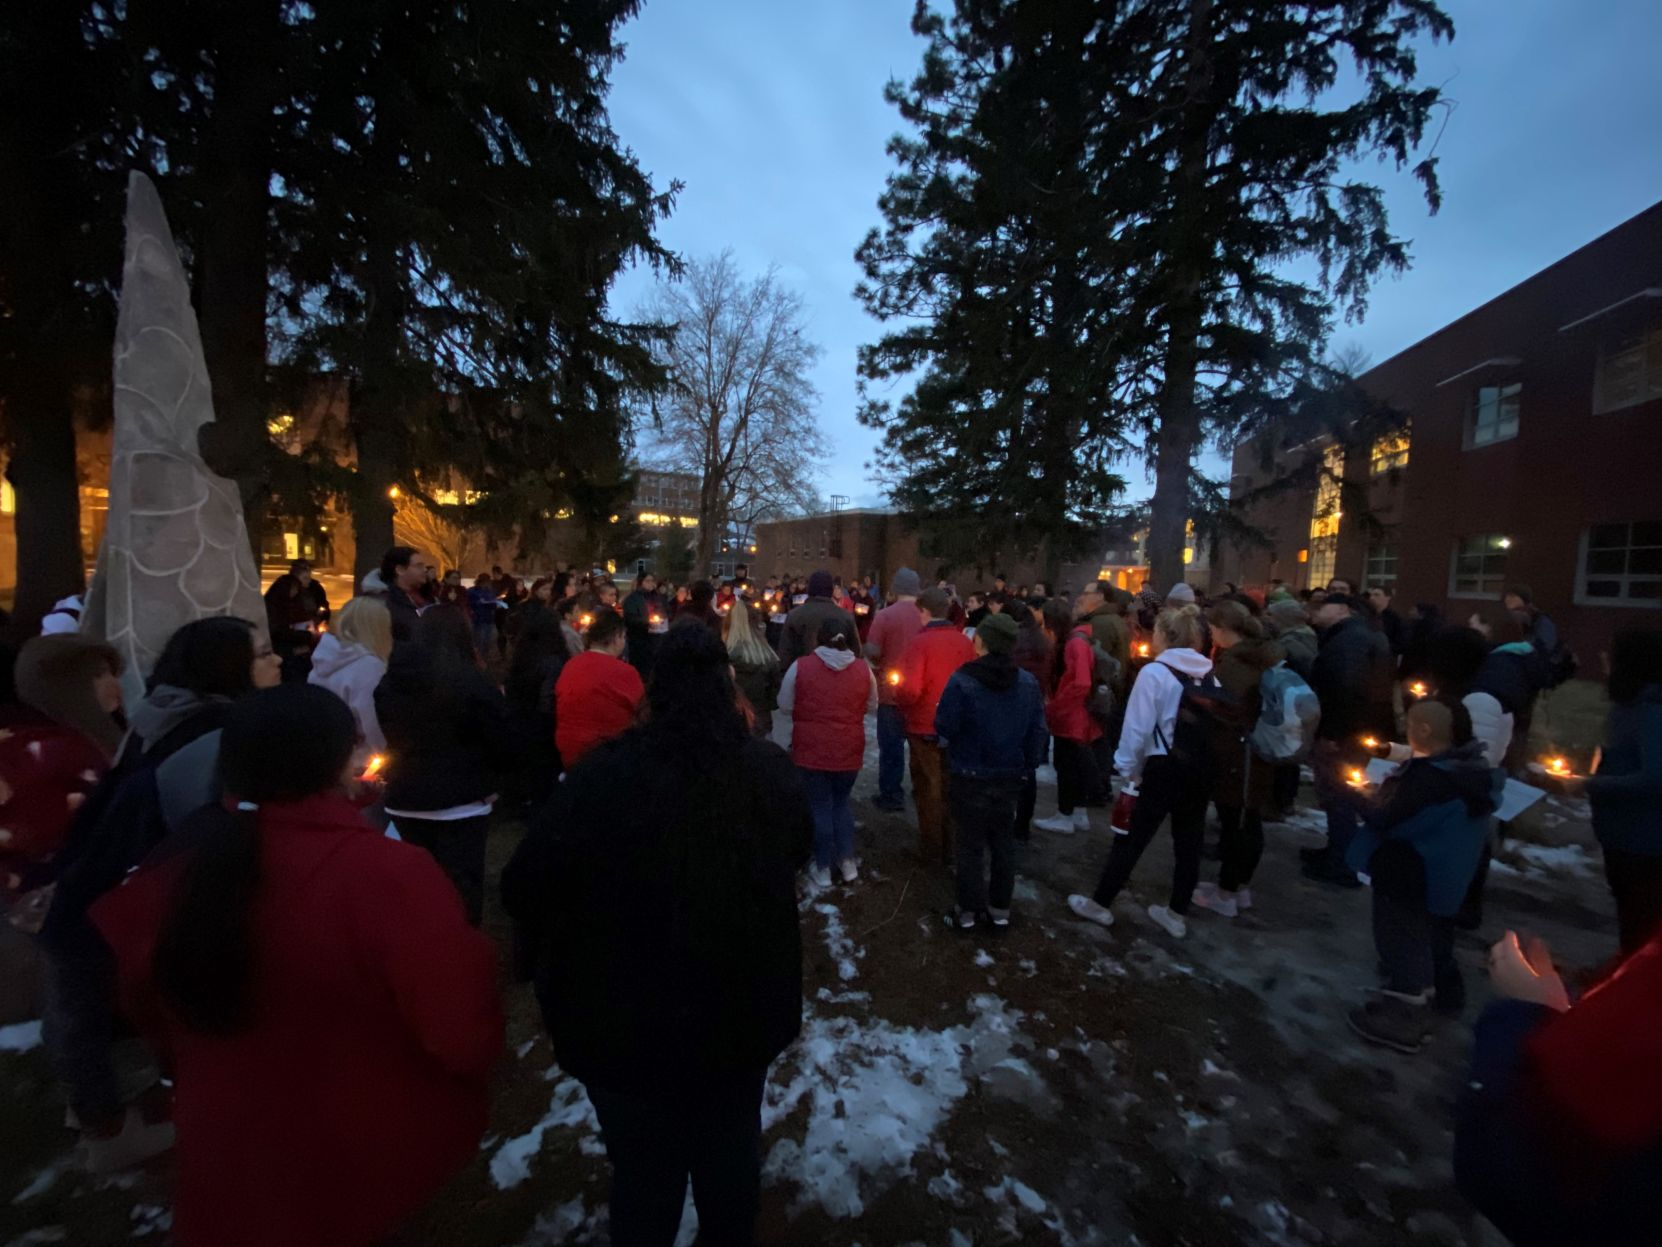 More than a hundred people gather in Missoula for Selena Not Afraid Vigil